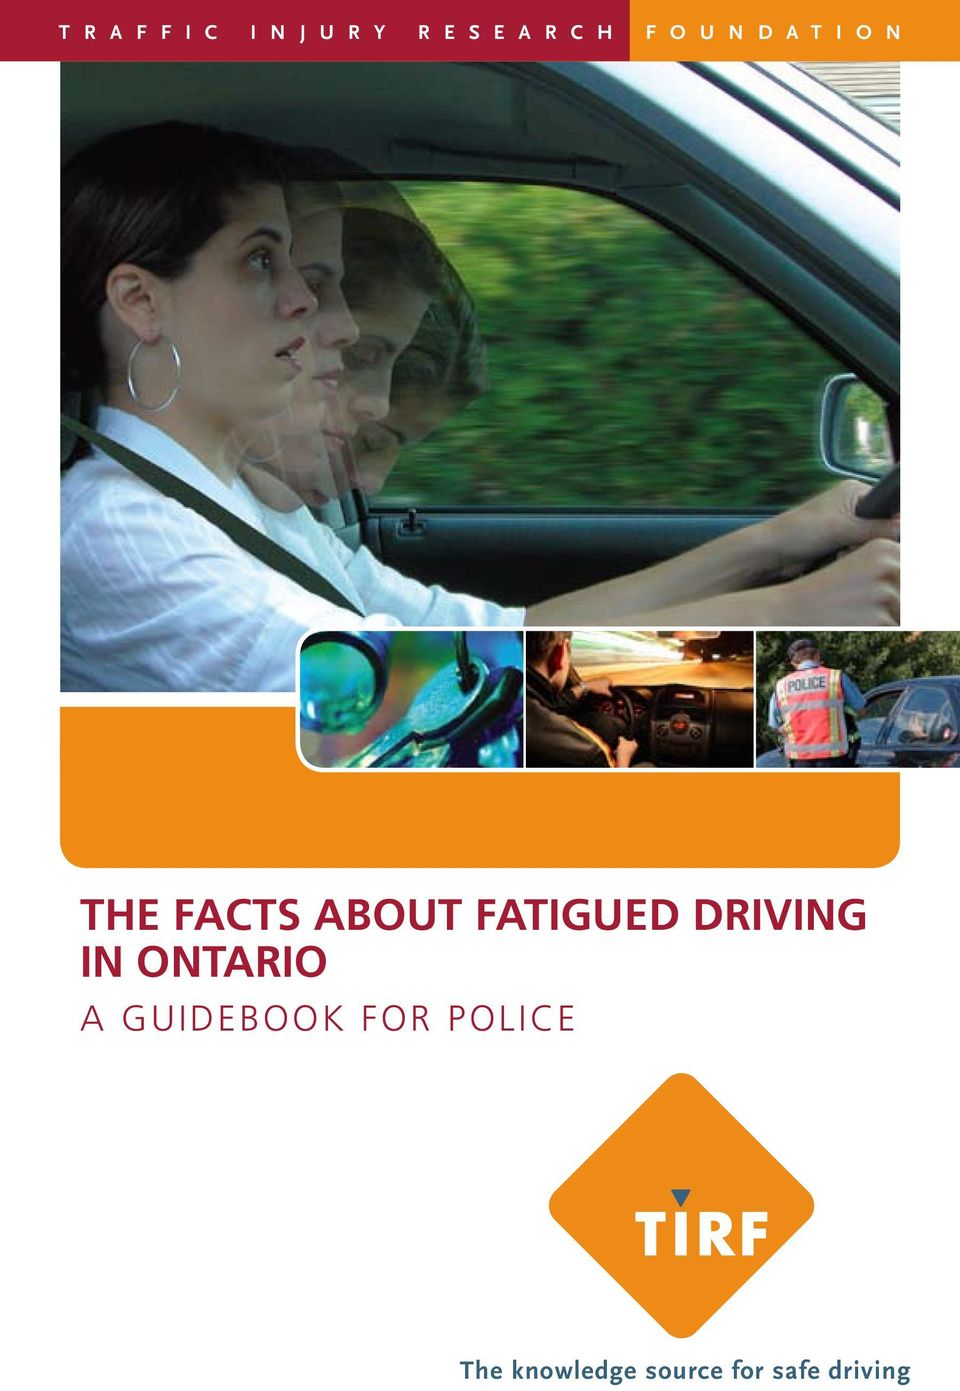 fatigued driving in ontario A GUIDEBOOK